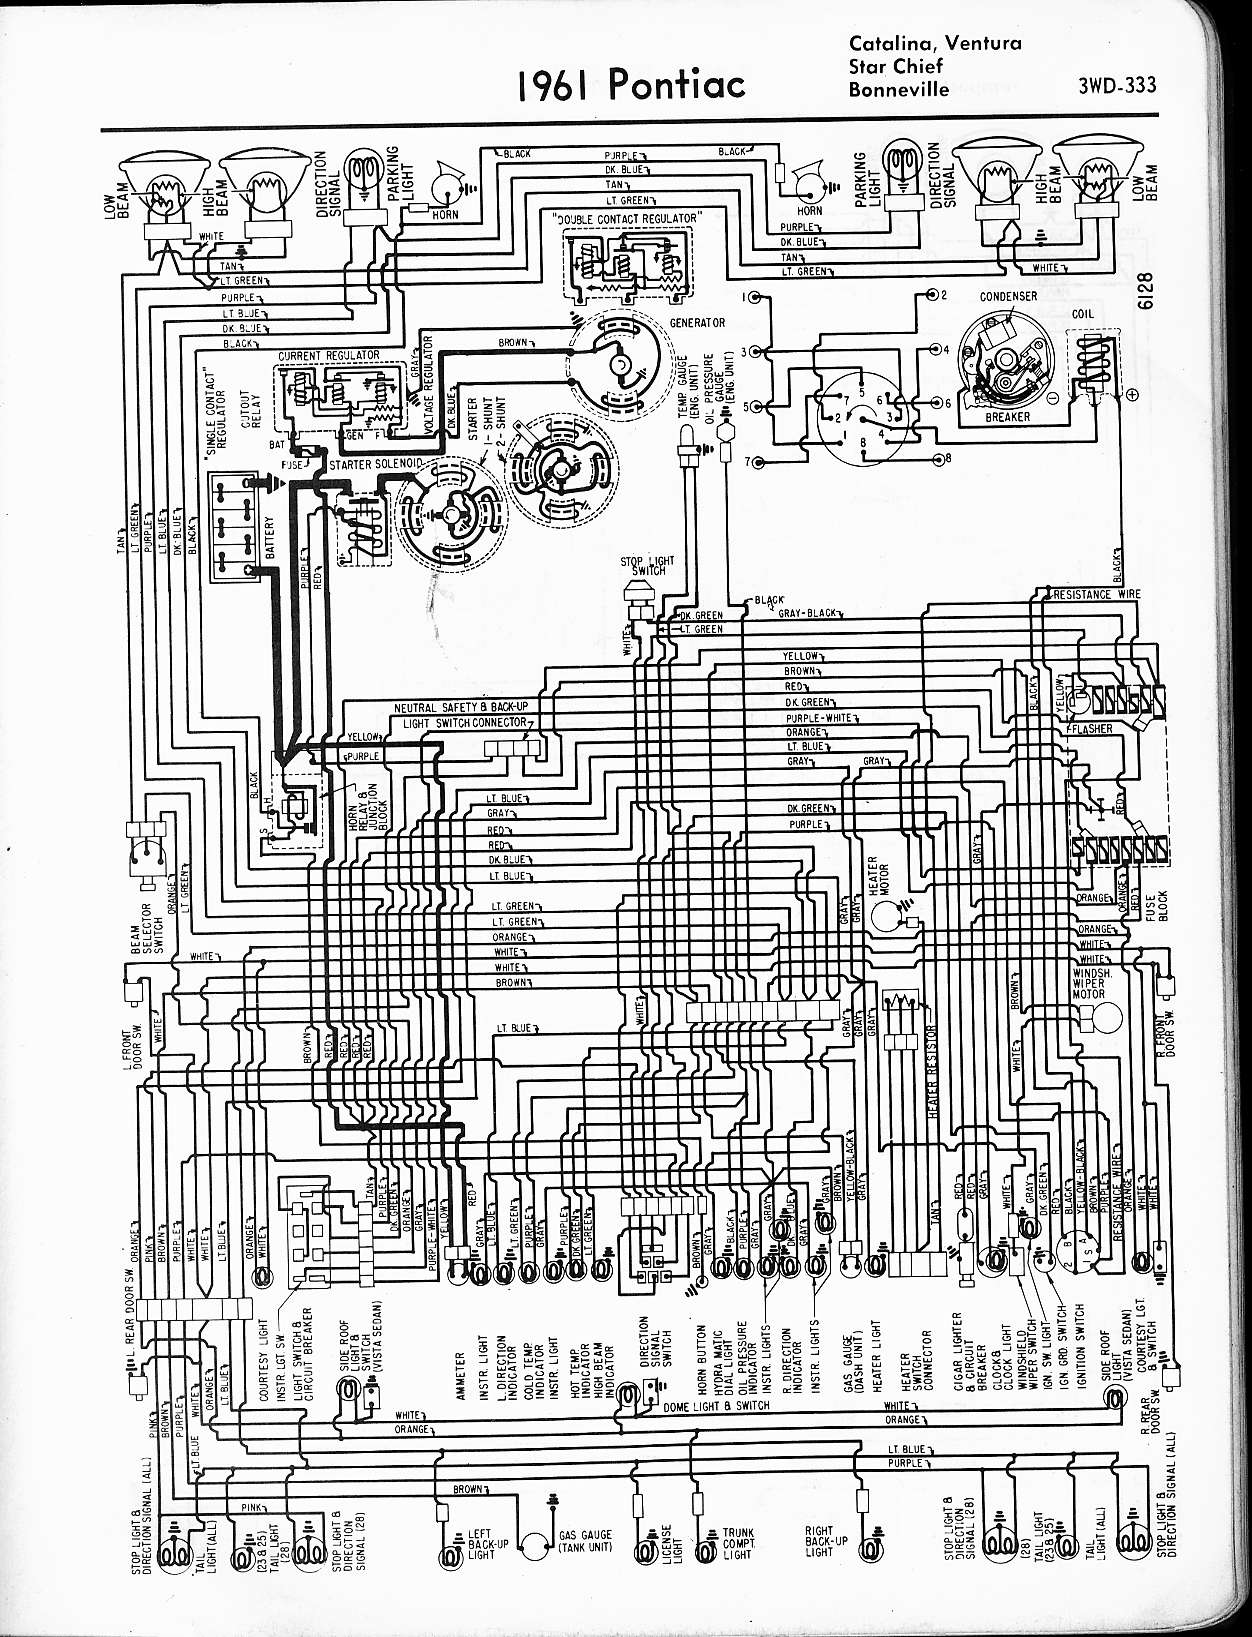 2004 Grand Am Engine Diagram Wiring Library 2007 Pontiac Prix 1966 Detailed Schematics Rh Lelandlutheran Com